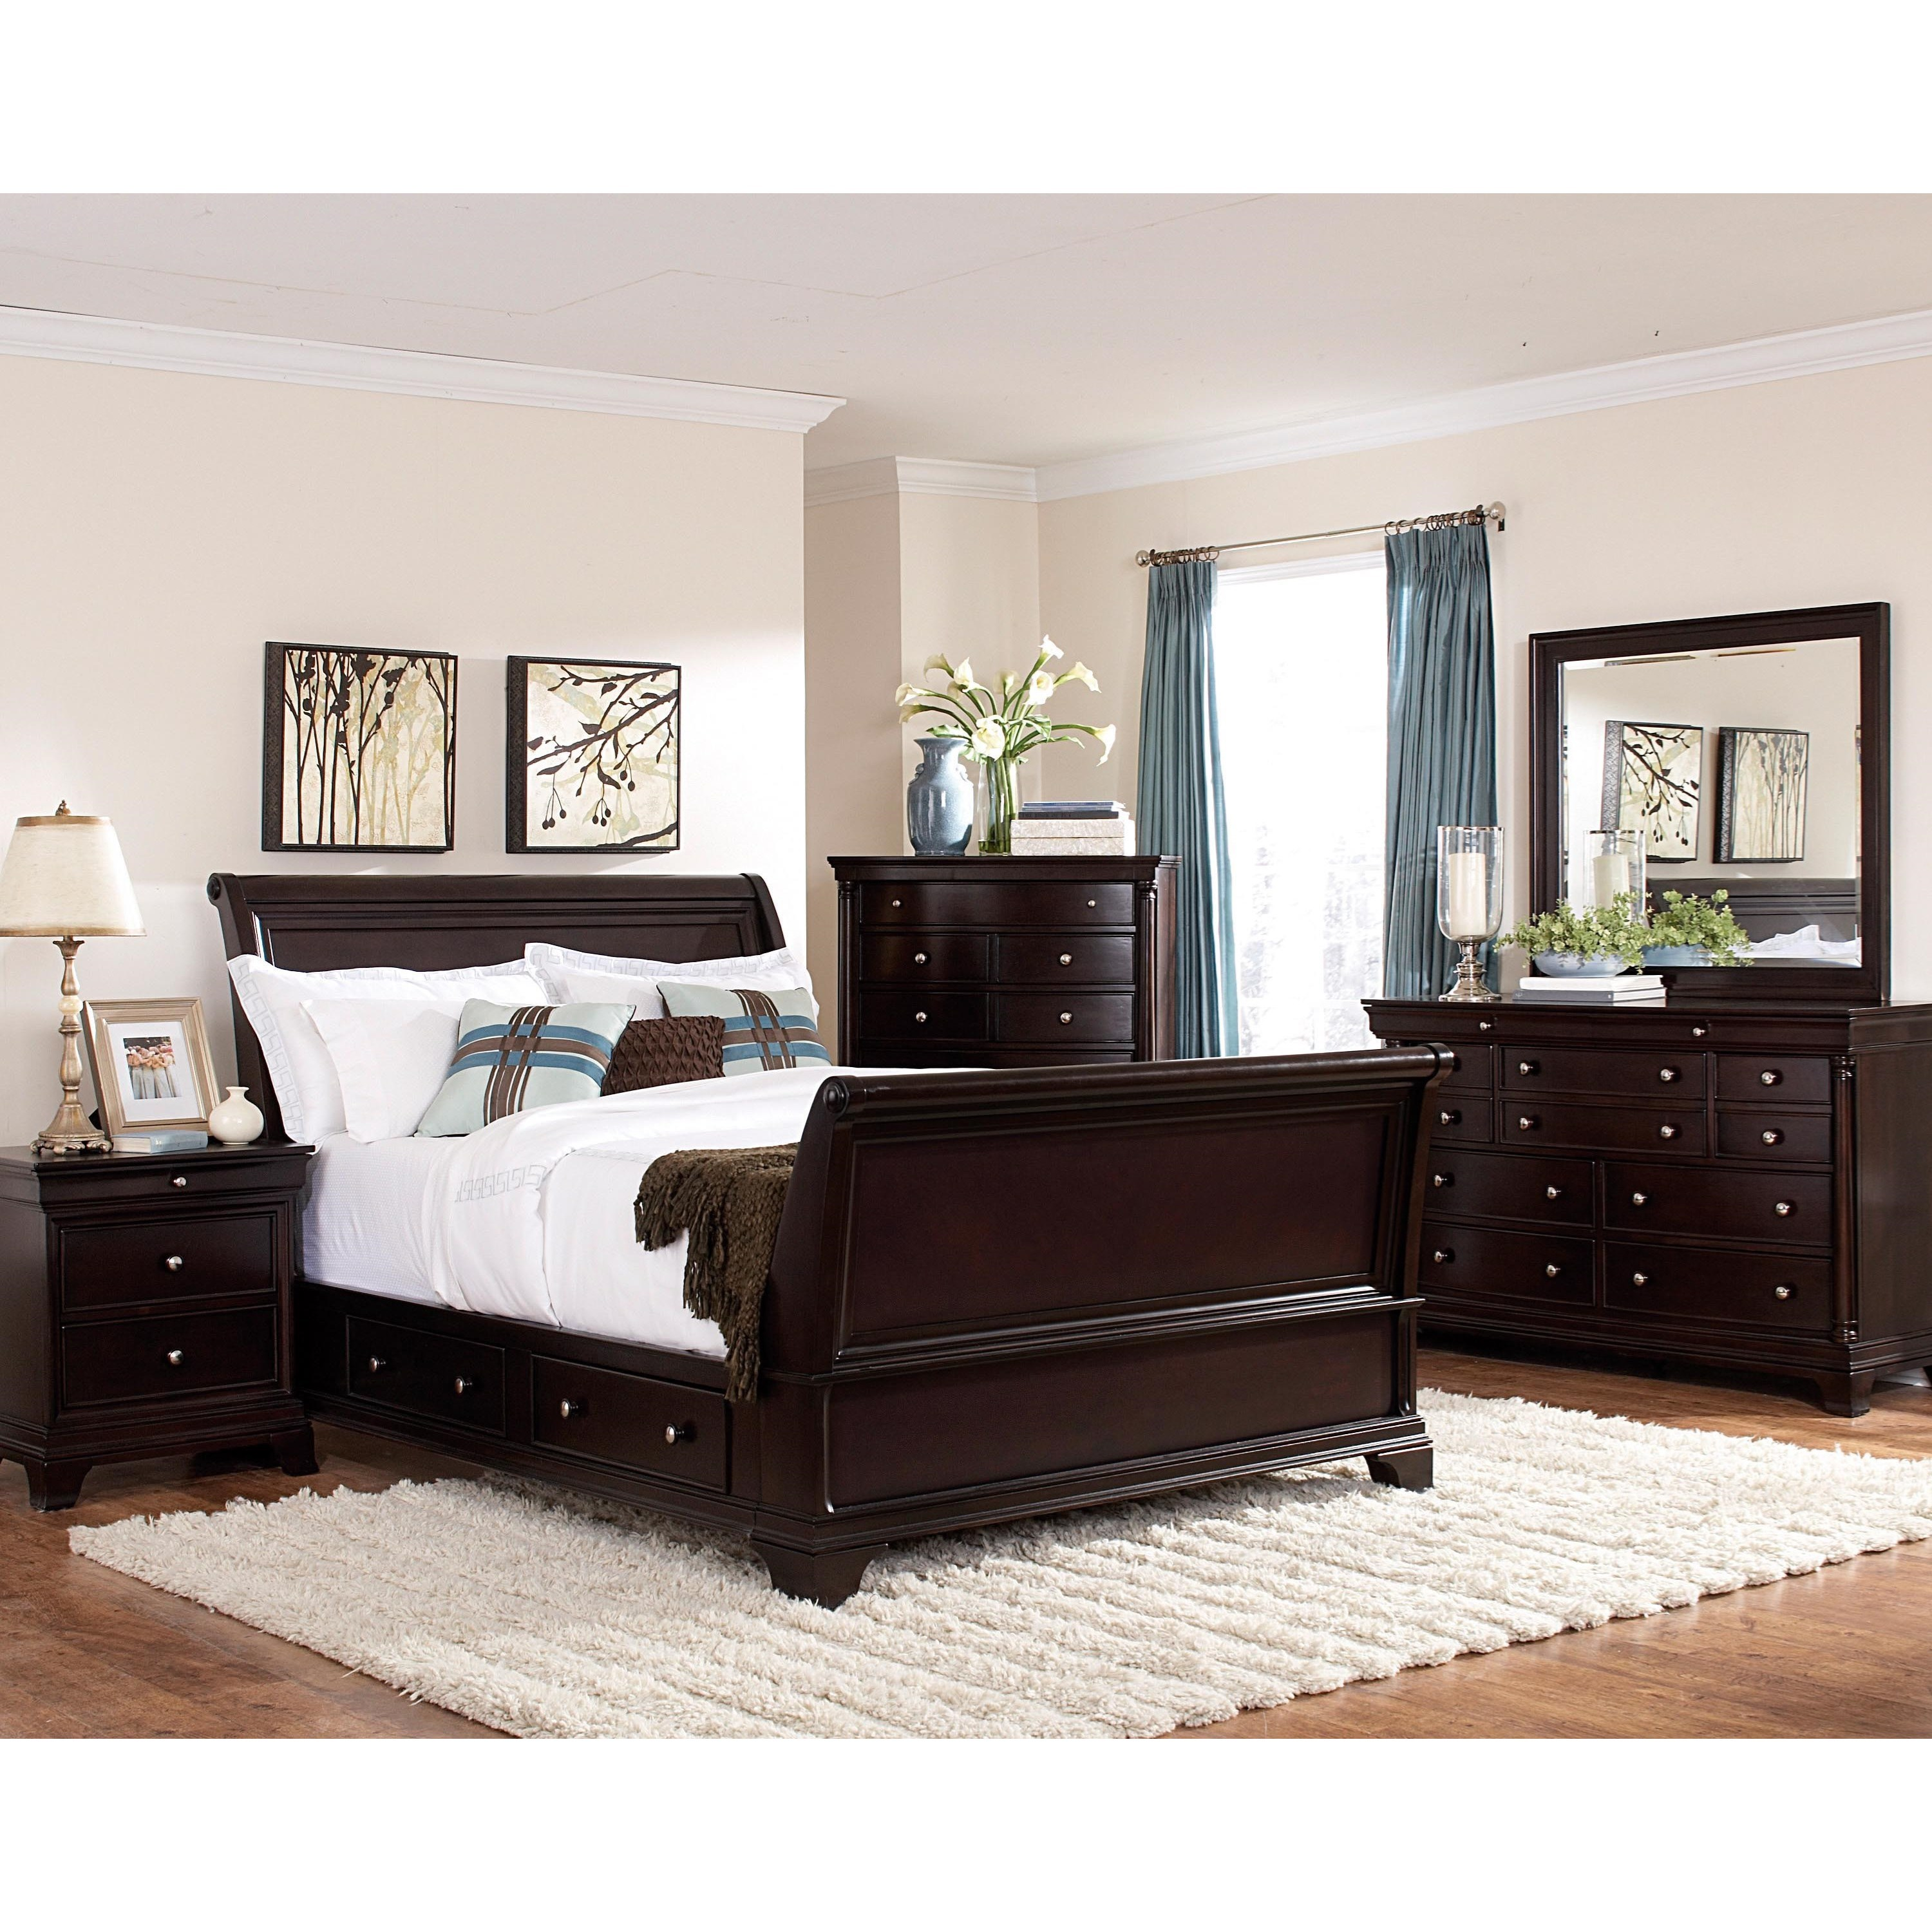 Inglewood Queen Bedroom Group by Homelegance at Nassau Furniture and Mattress